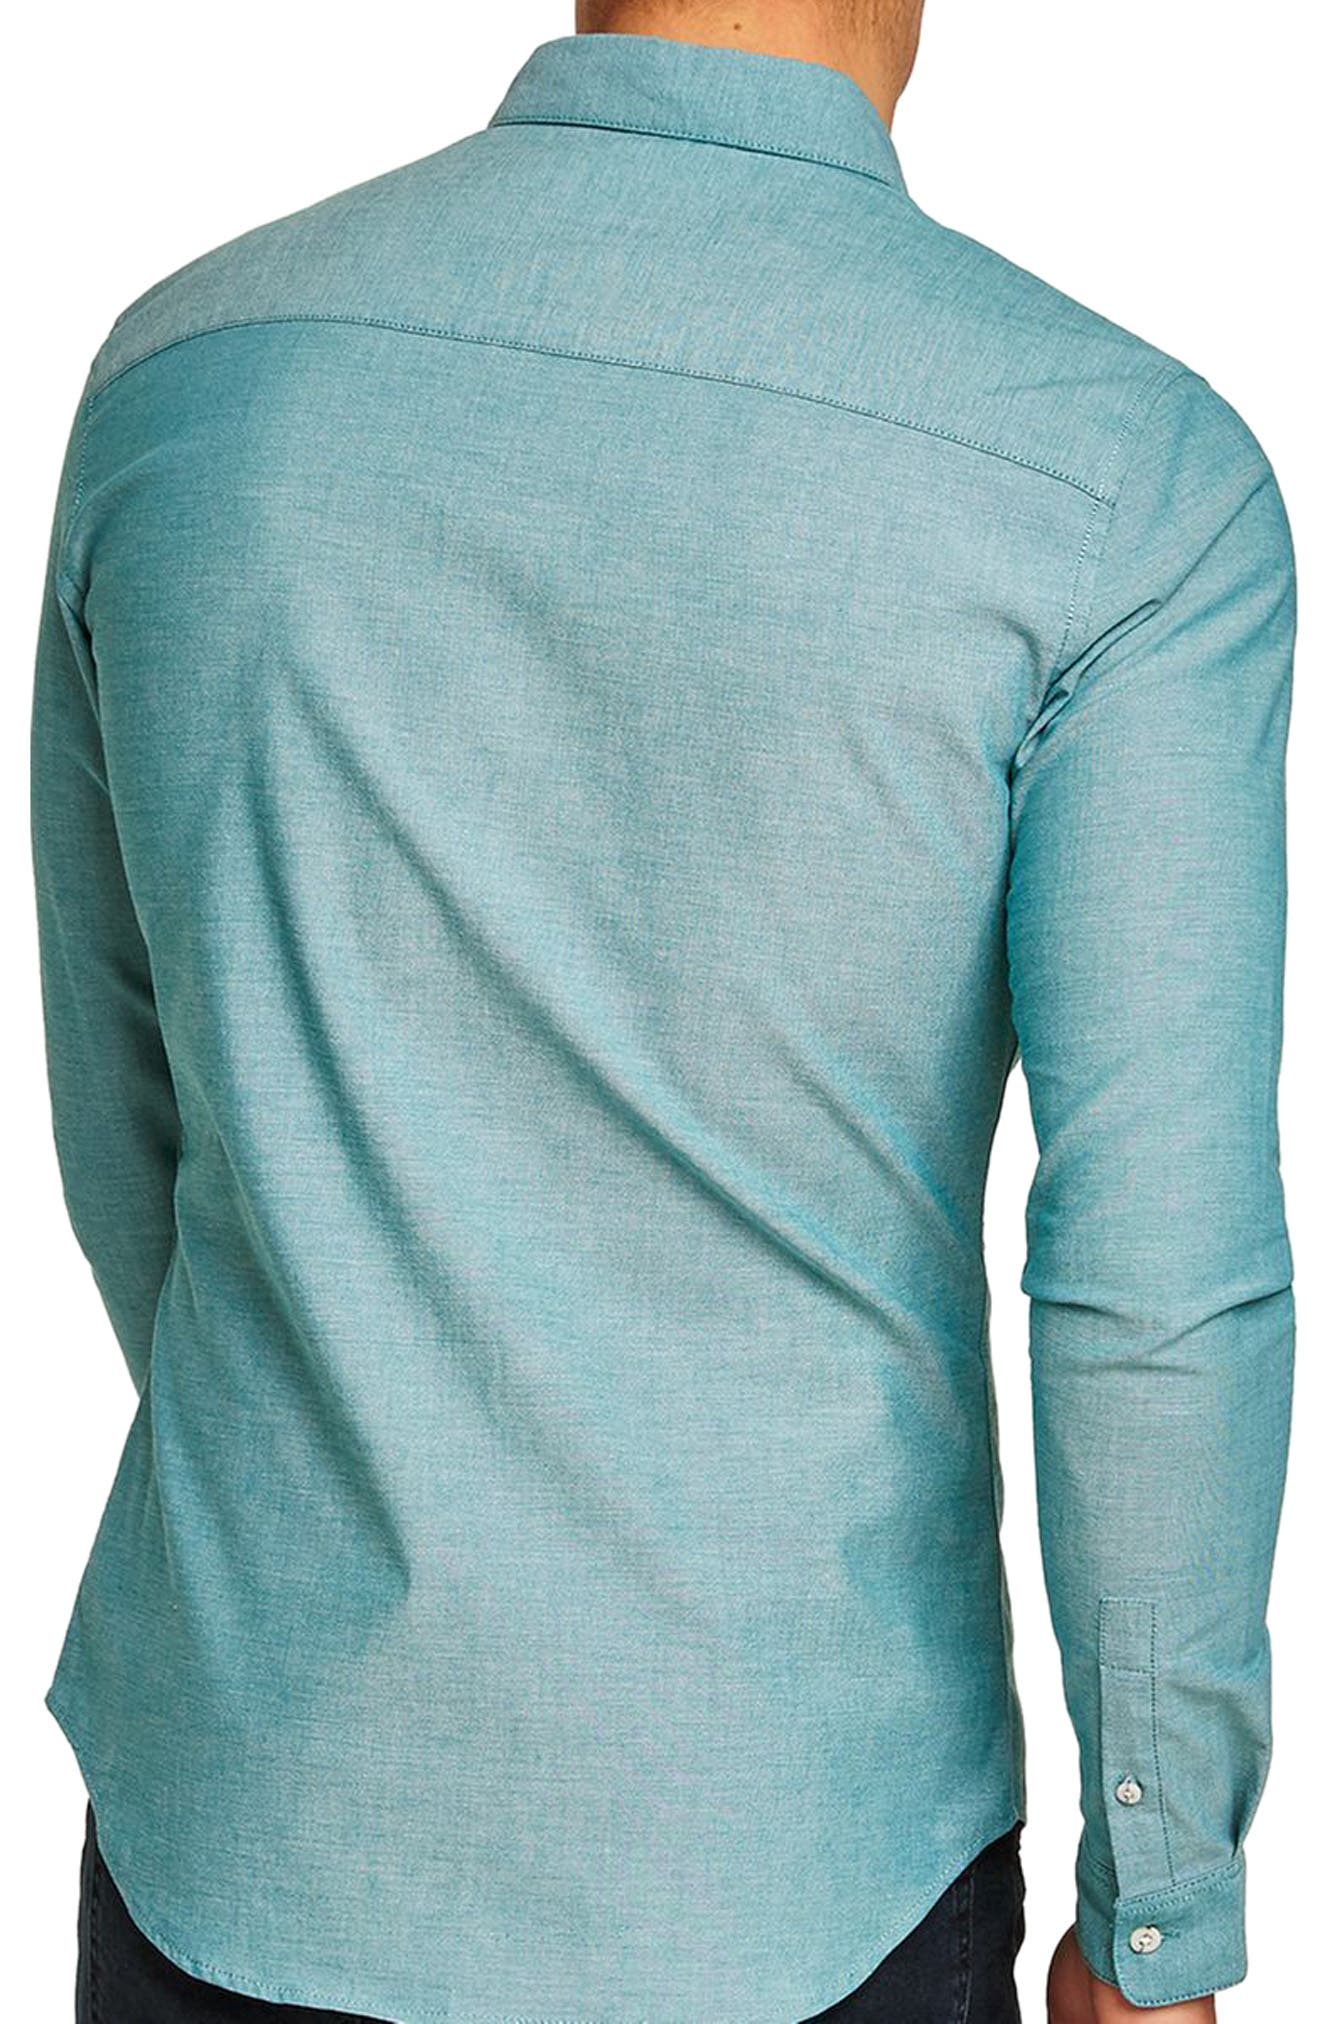 Muscle Fit Oxford Shirt,                             Alternate thumbnail 5, color,